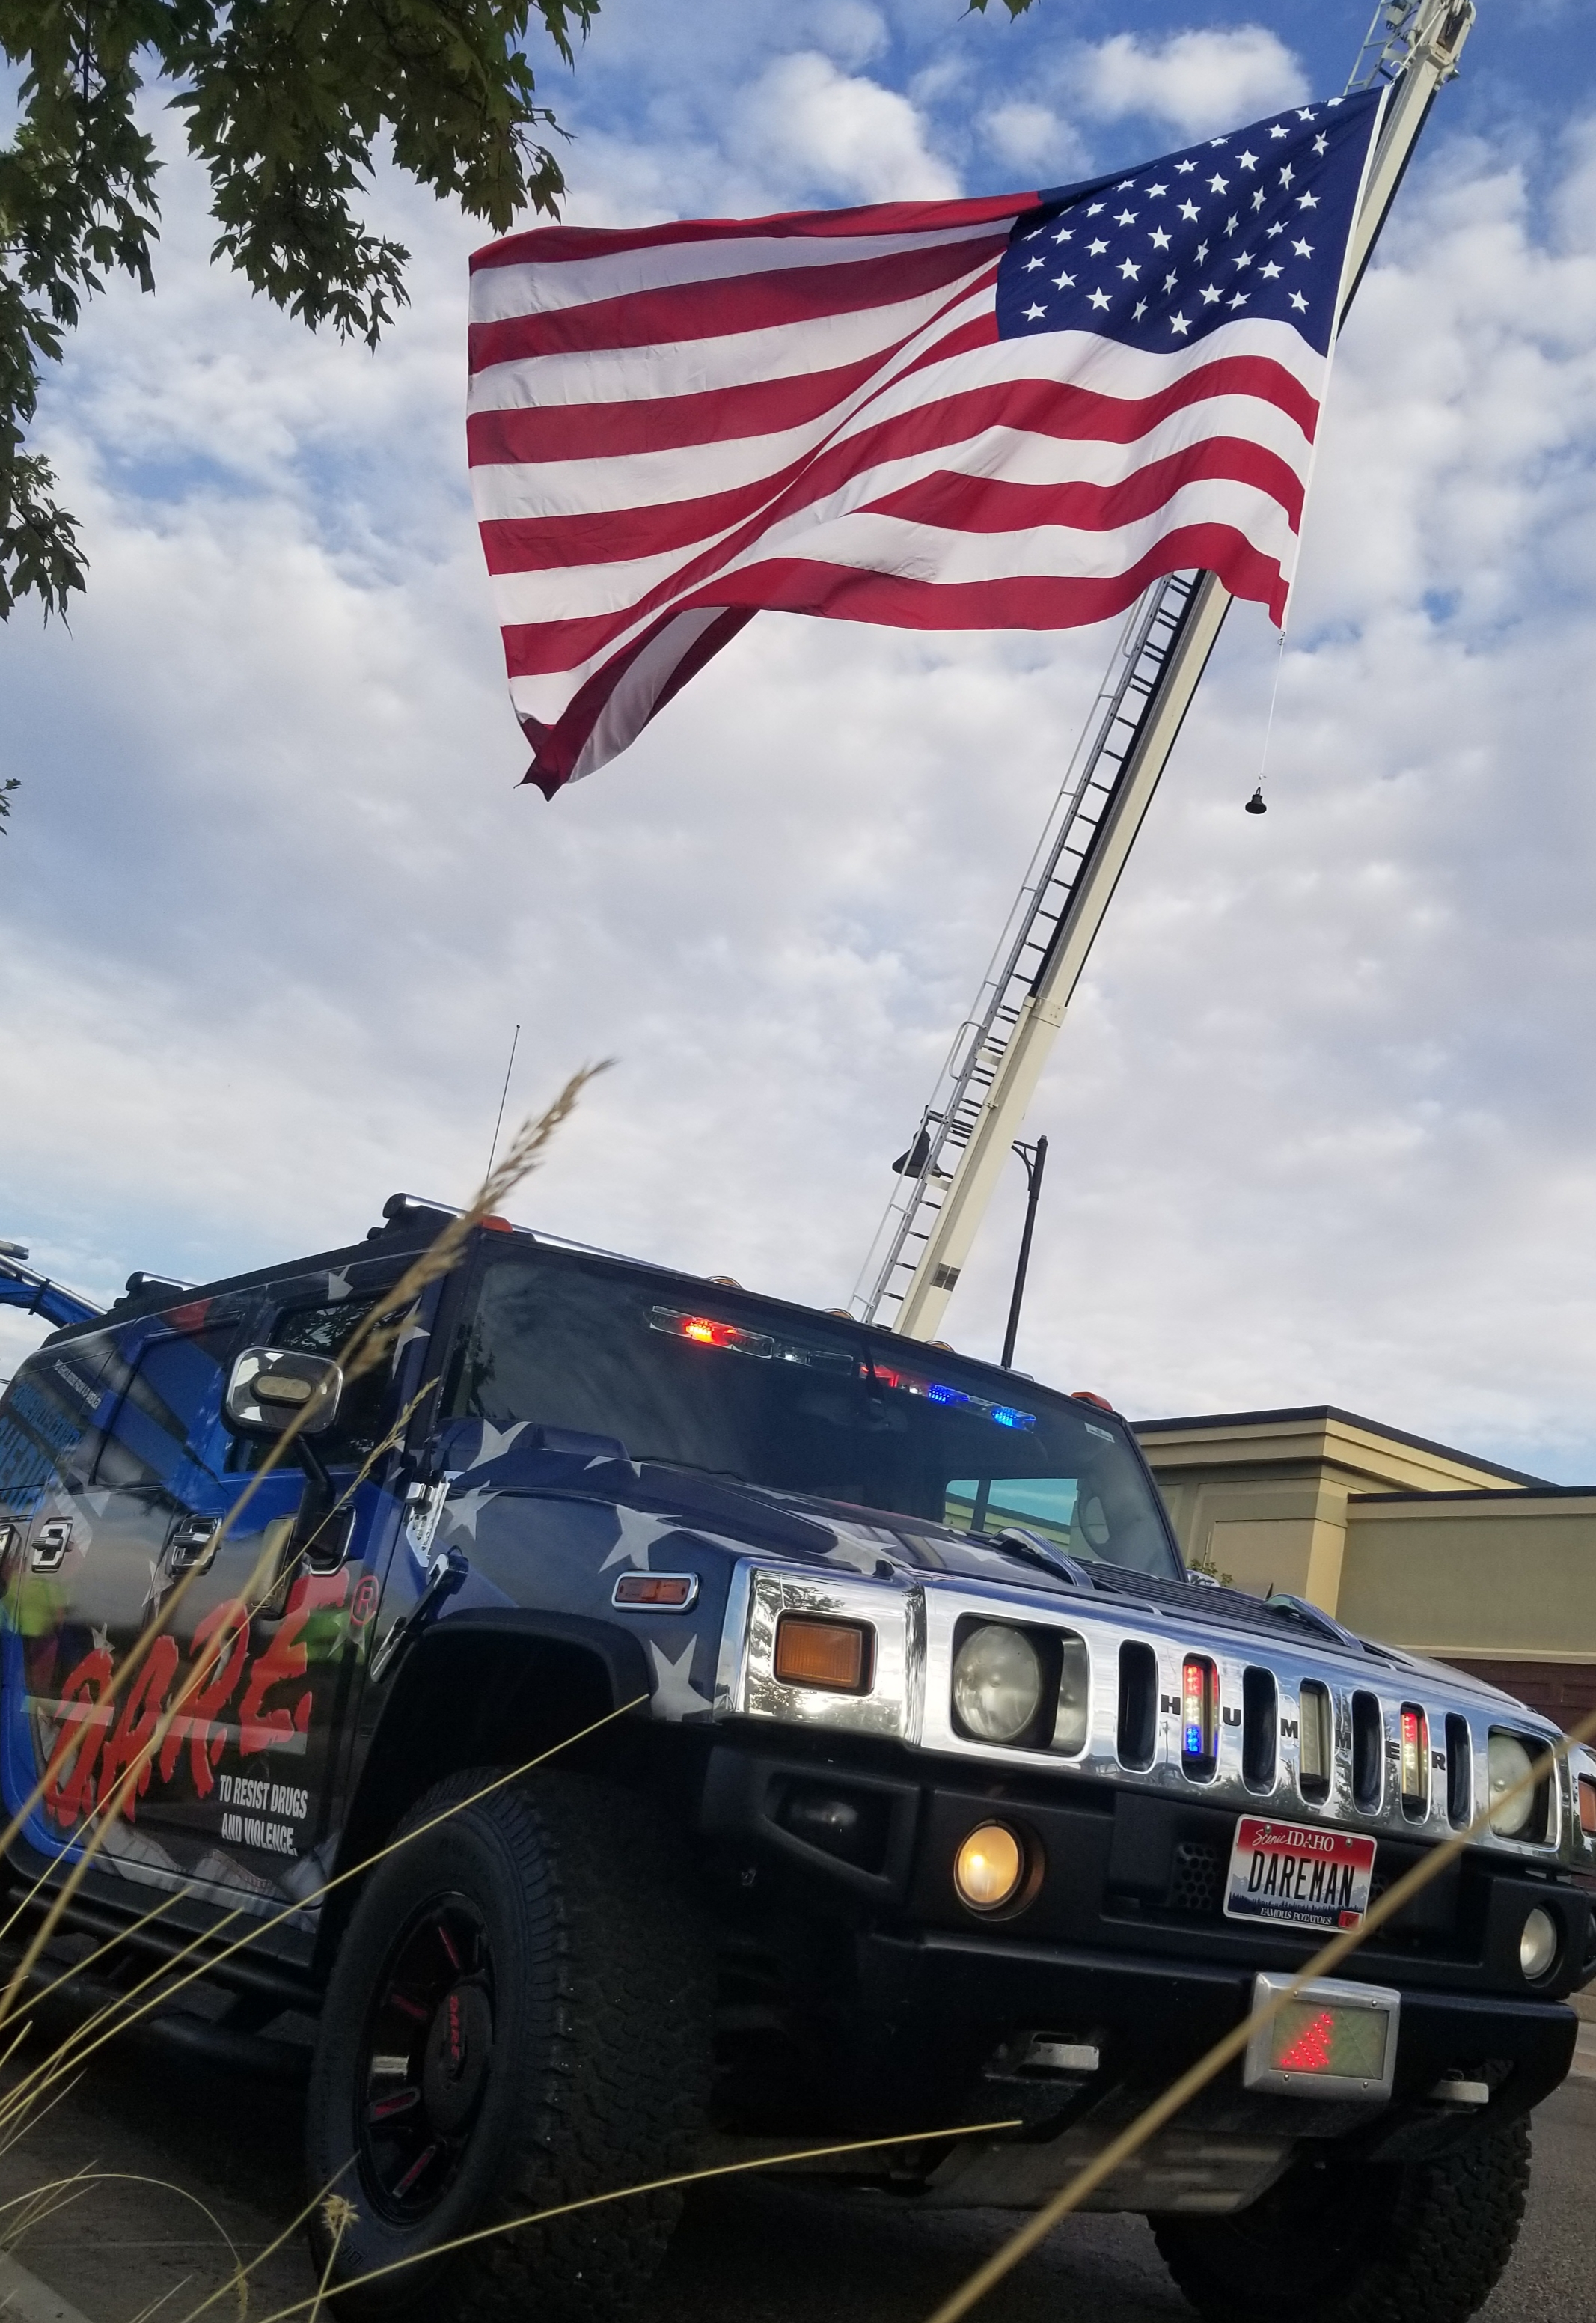 DARE Hummer and American flag